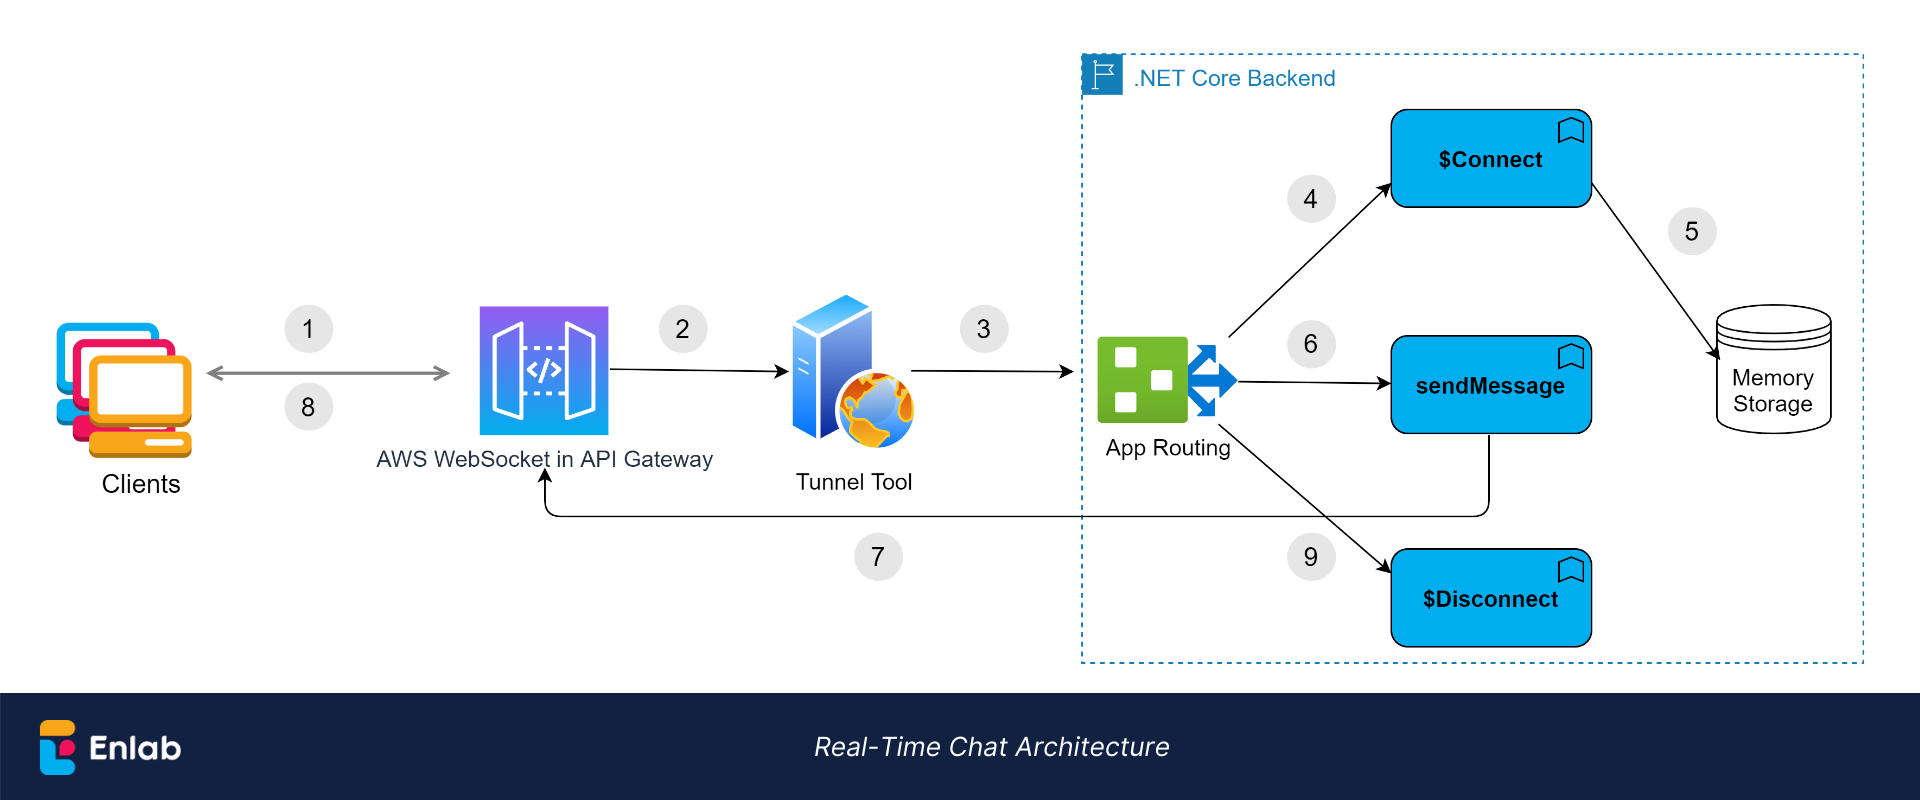 Real-time chat architecture